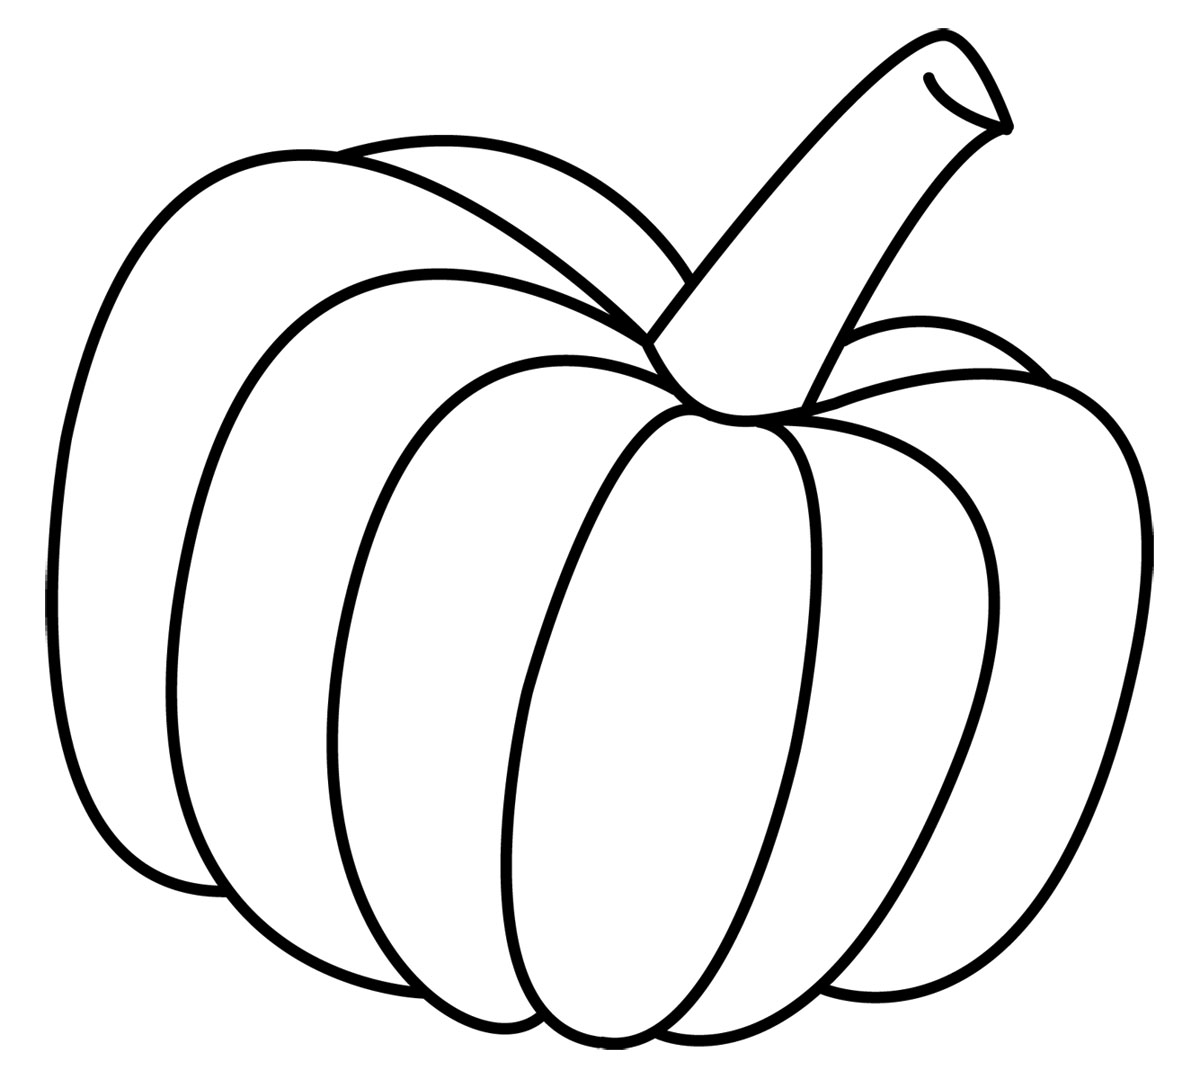 Pumpkin Vine Drawing | Clipart Panda - Free Clipart Images